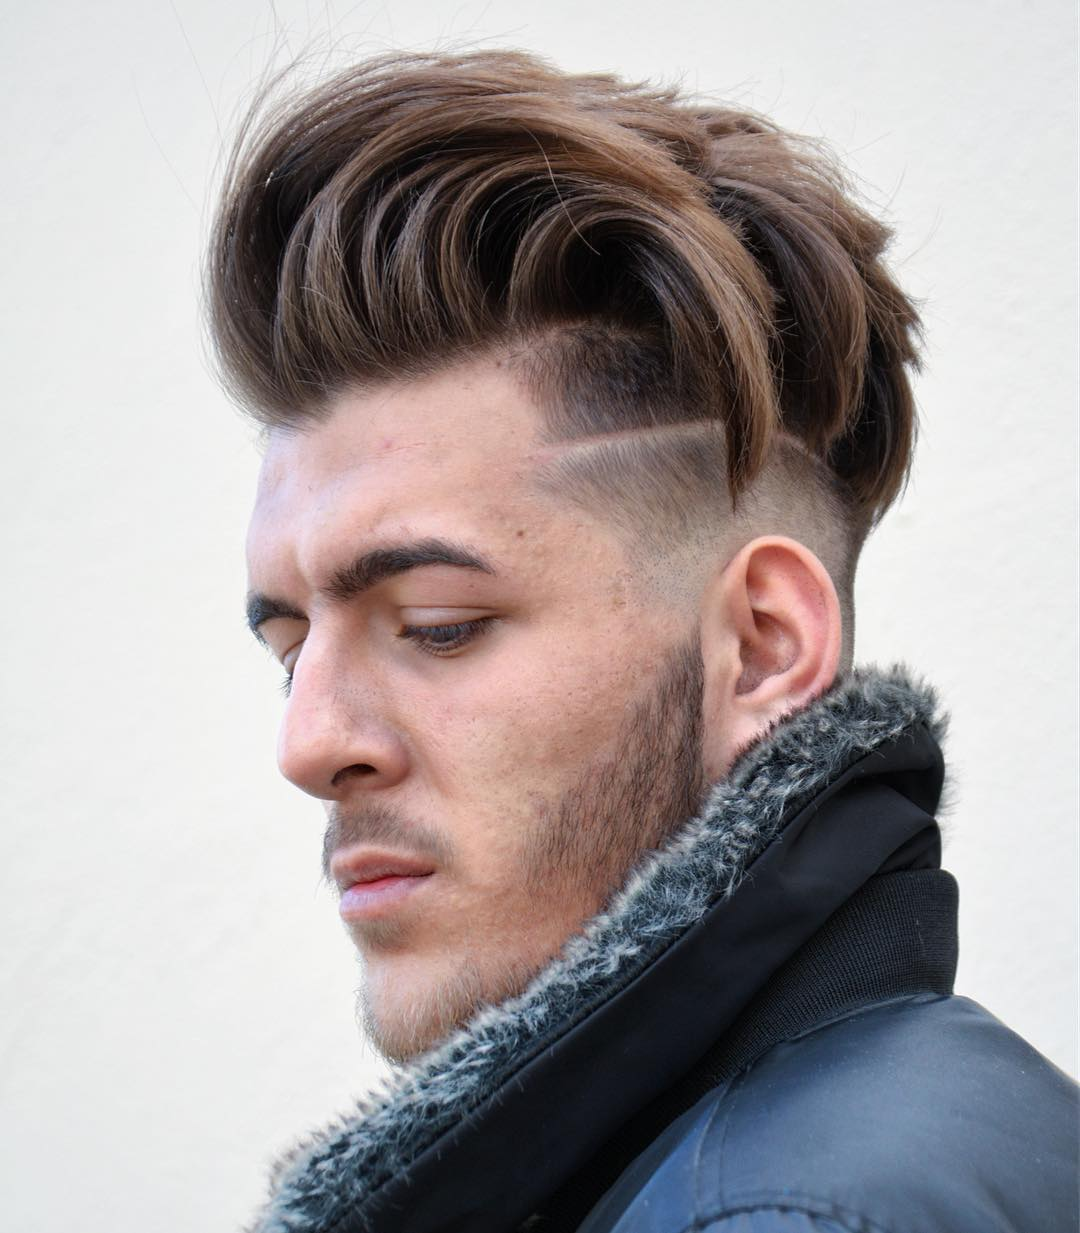 Top 35 Popular Men S Haircuts Hairstyles For Men 2019: 45 Cool Men's Hairstyles 2017